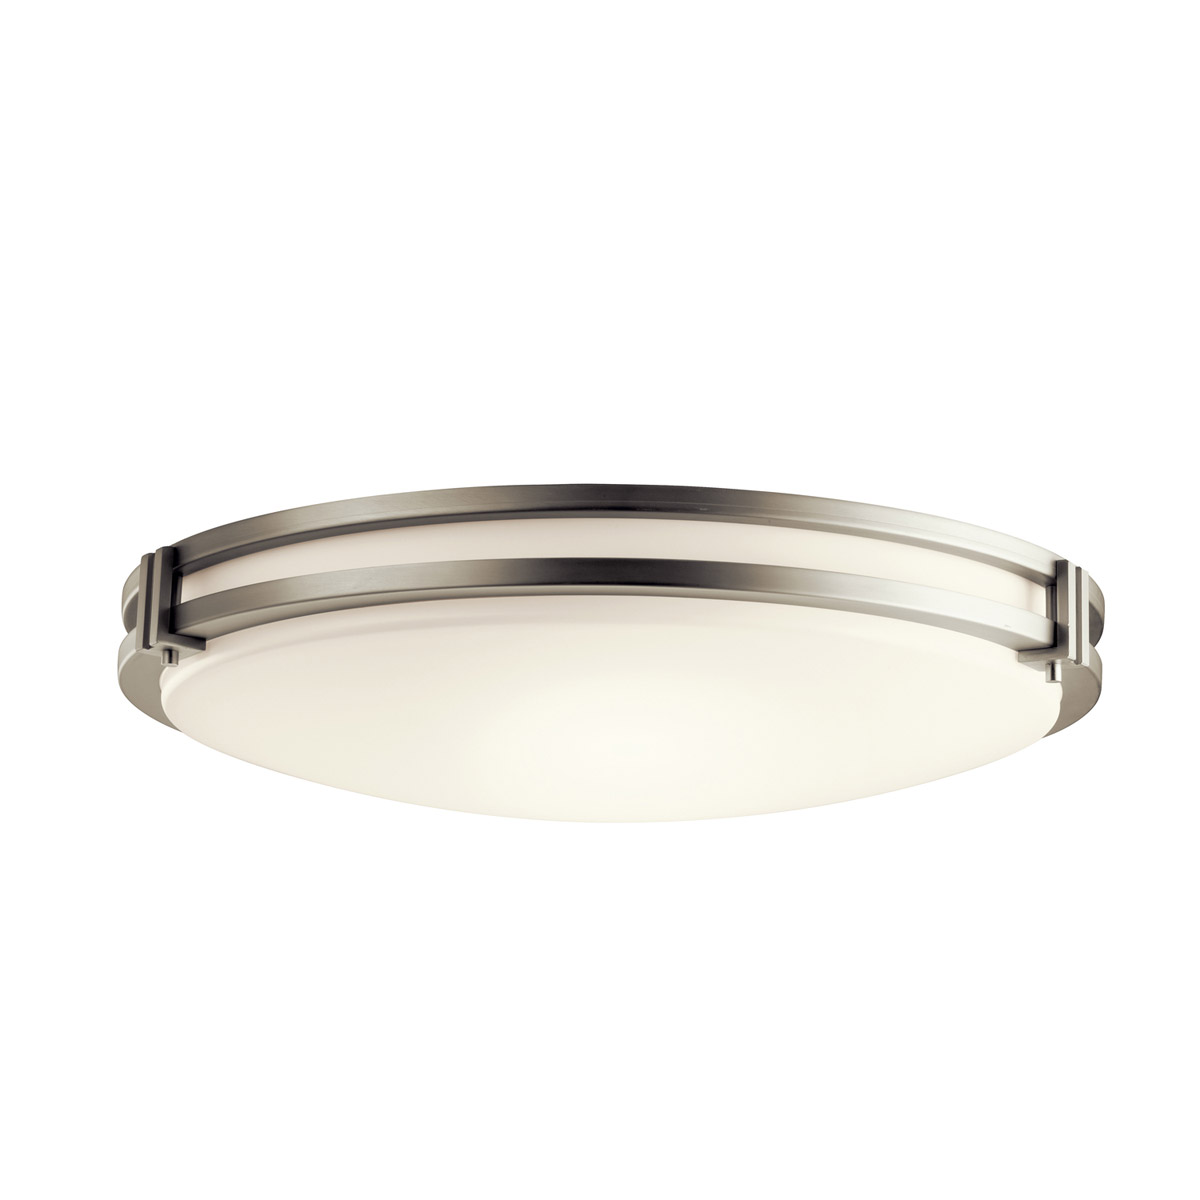 kichler-lighting-signature-flush-mount-10828ni